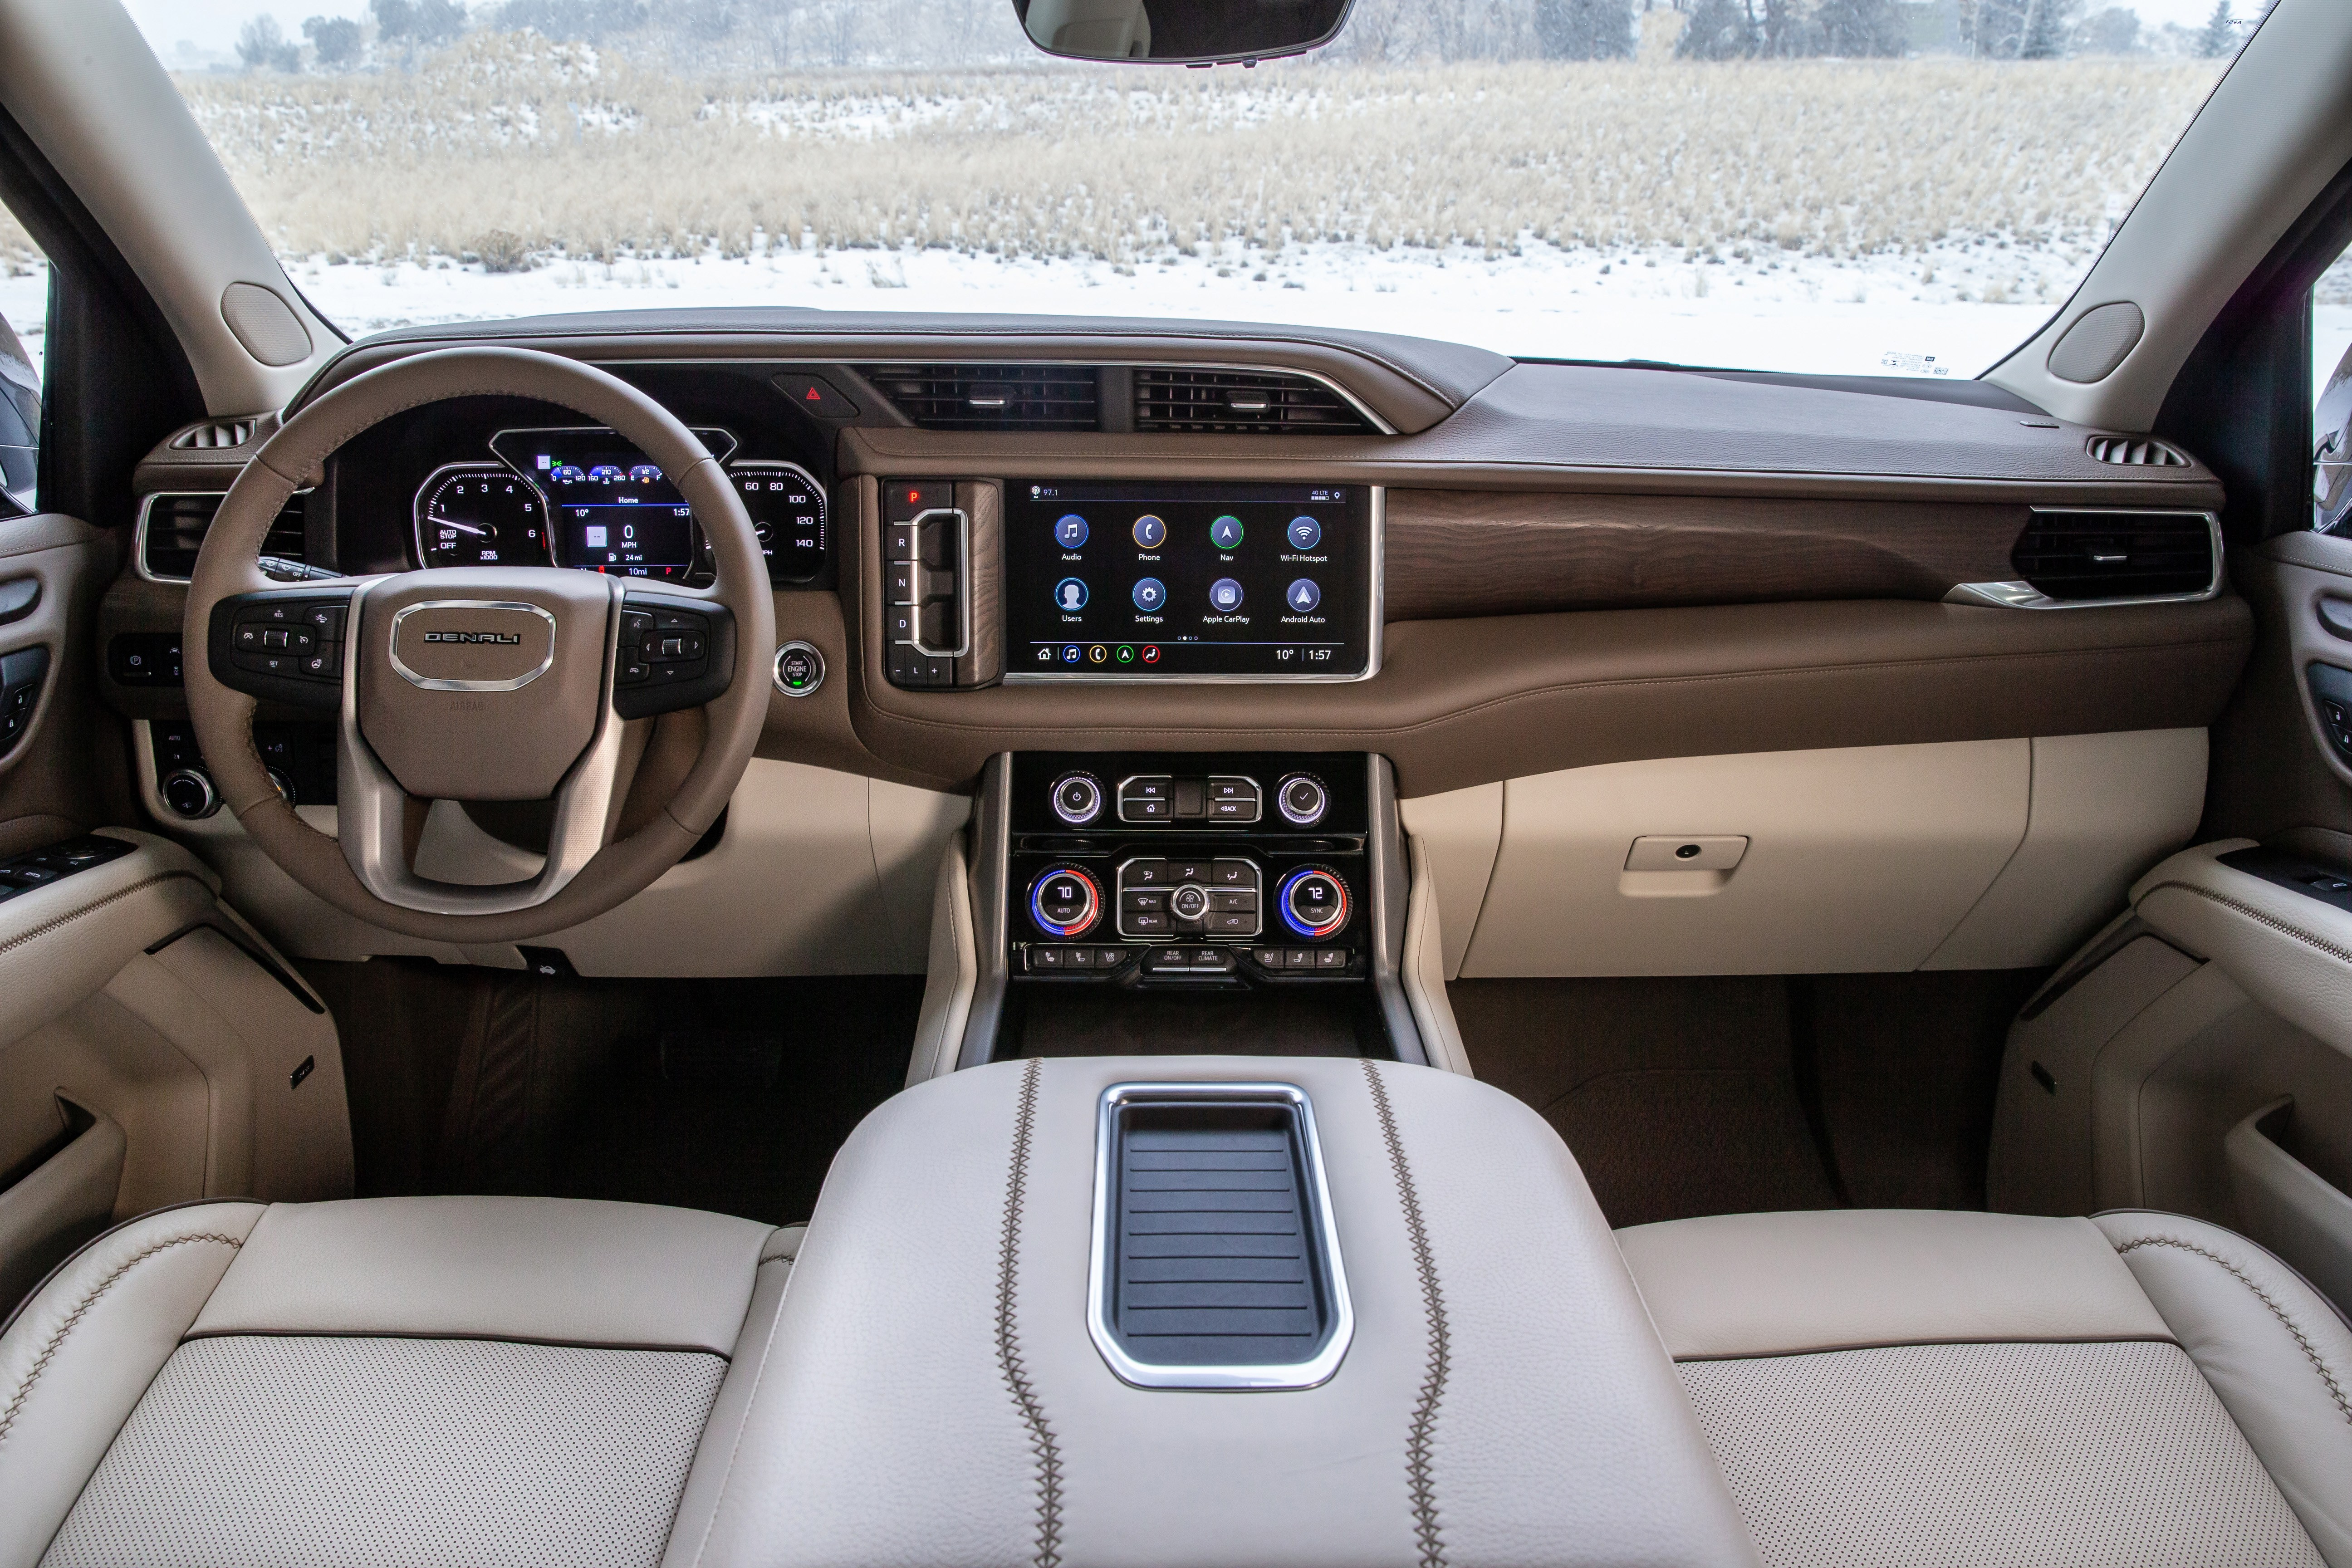 2021 Gmc Yukon Revealed Blocky New Looks And Available At4 Trim Autoguide Com News